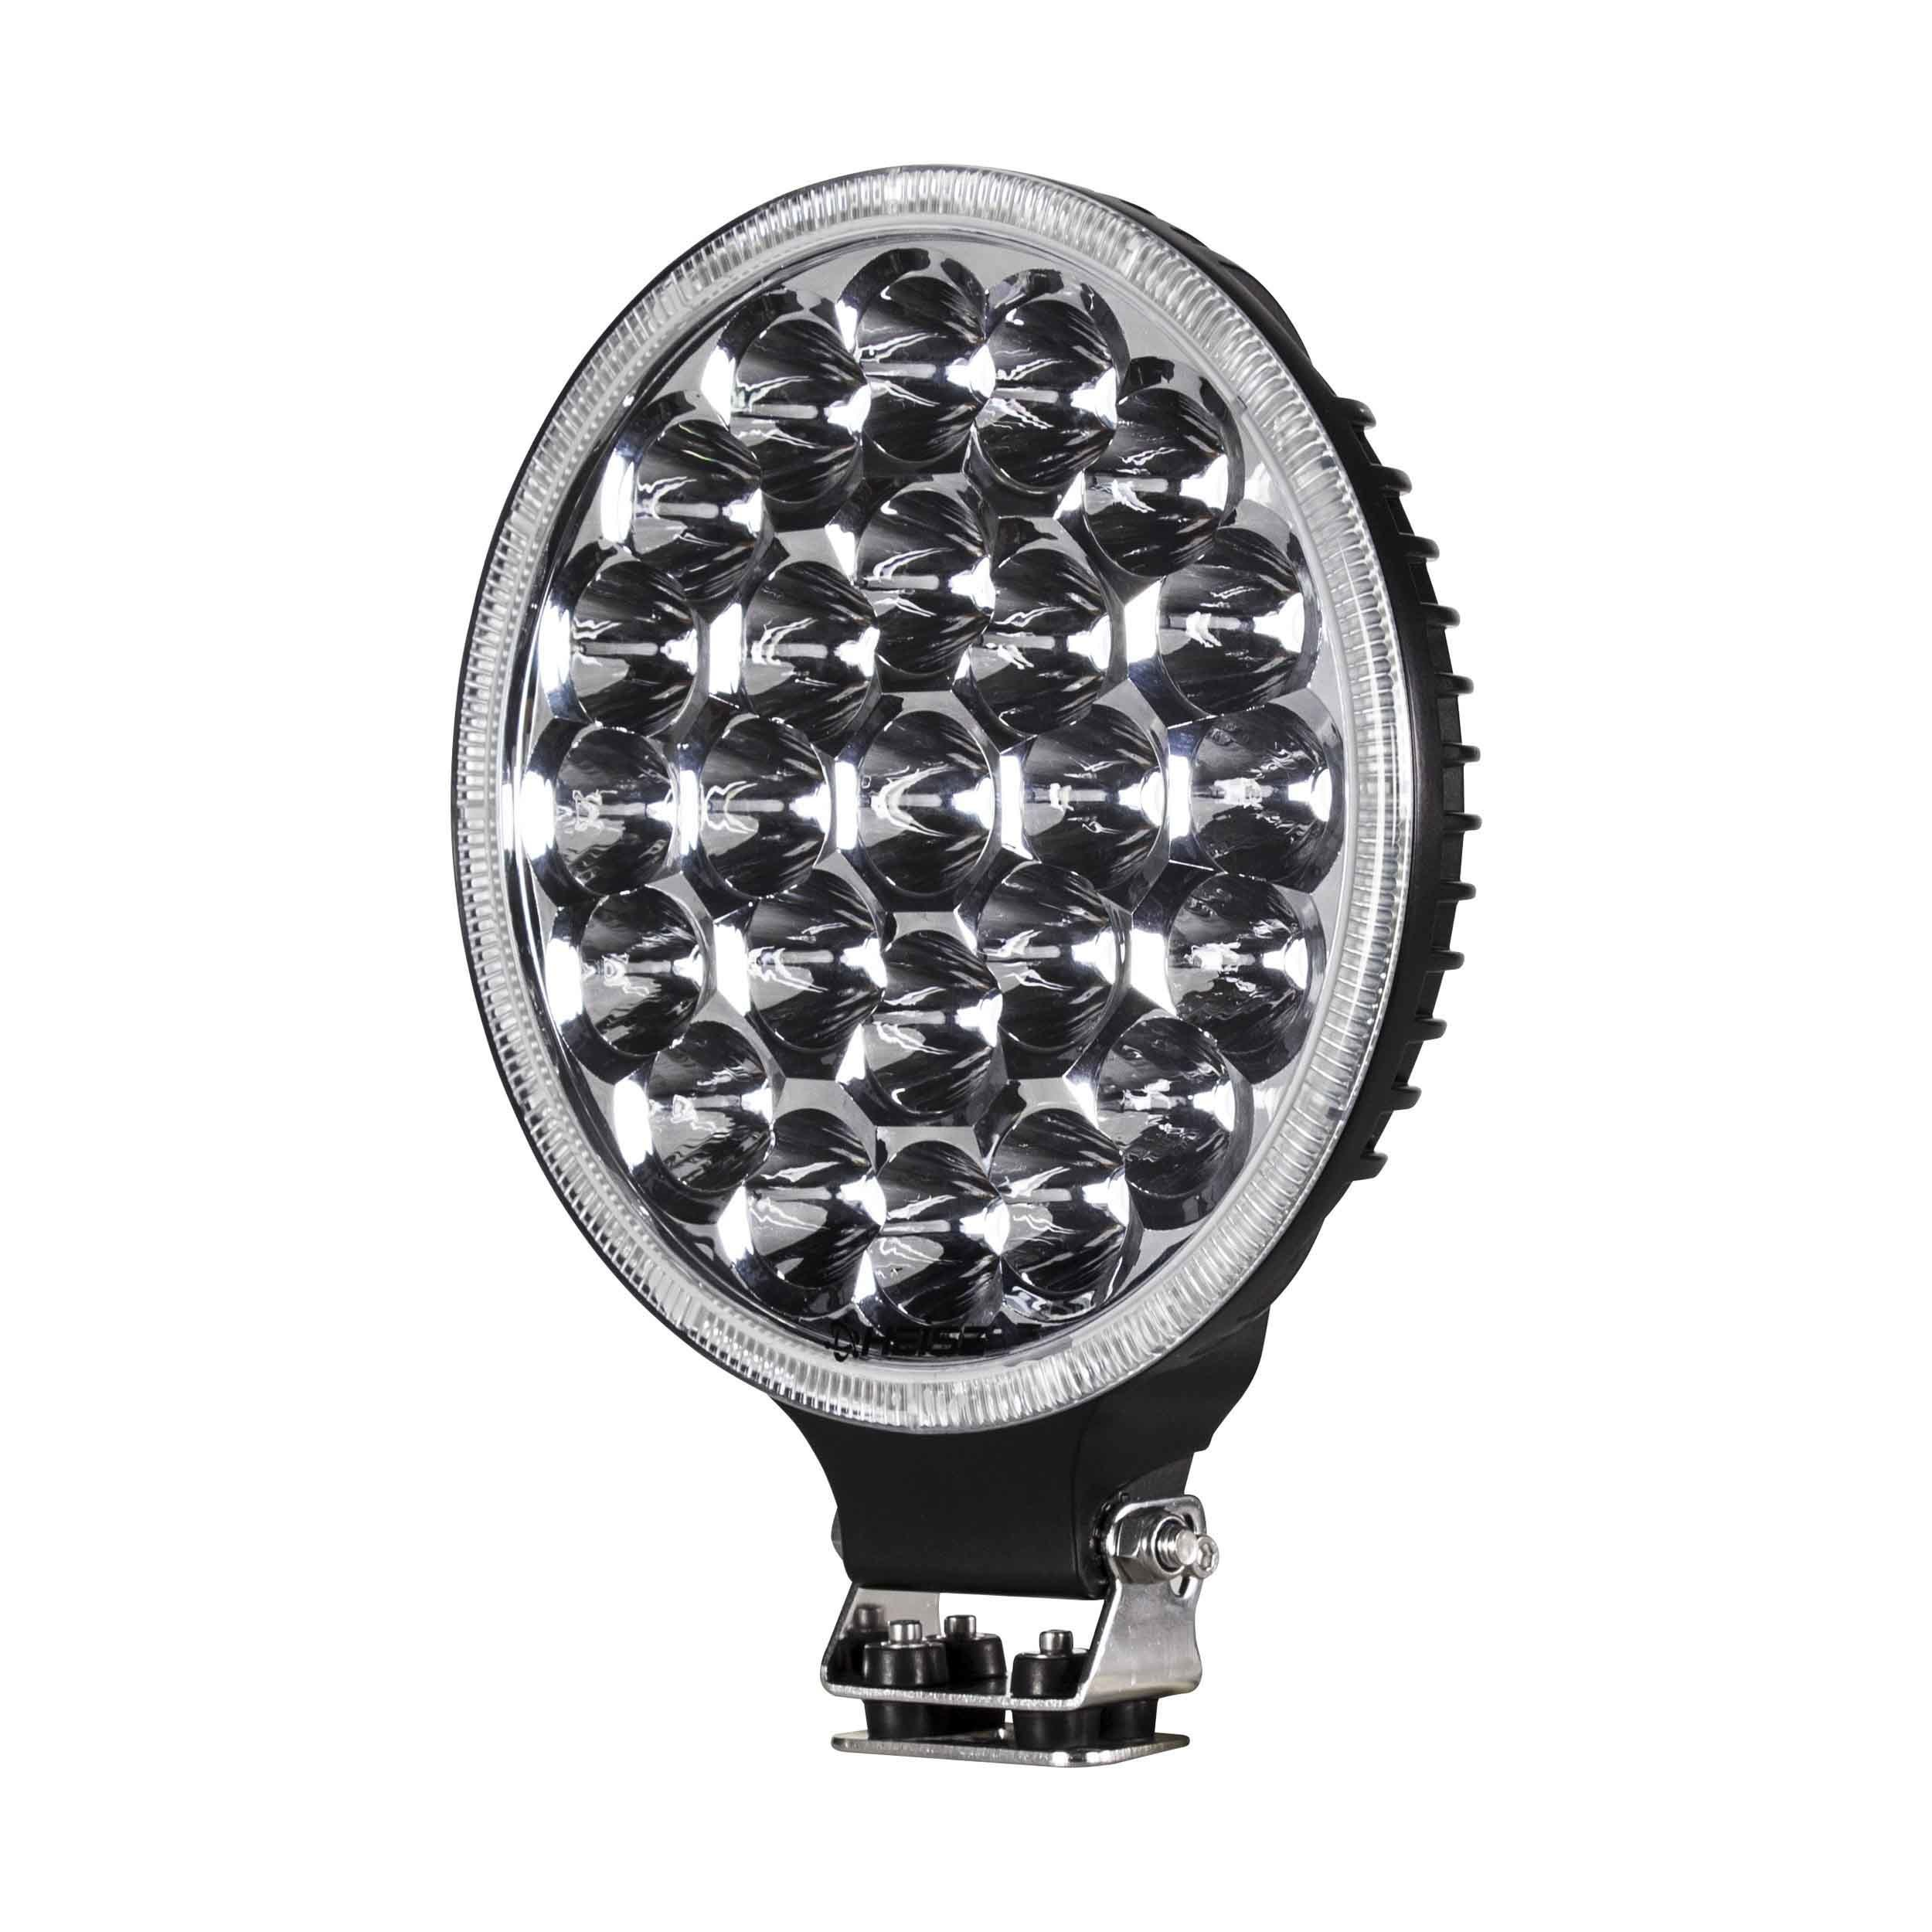 Round Driving Light - 9 Inch, 25 LED